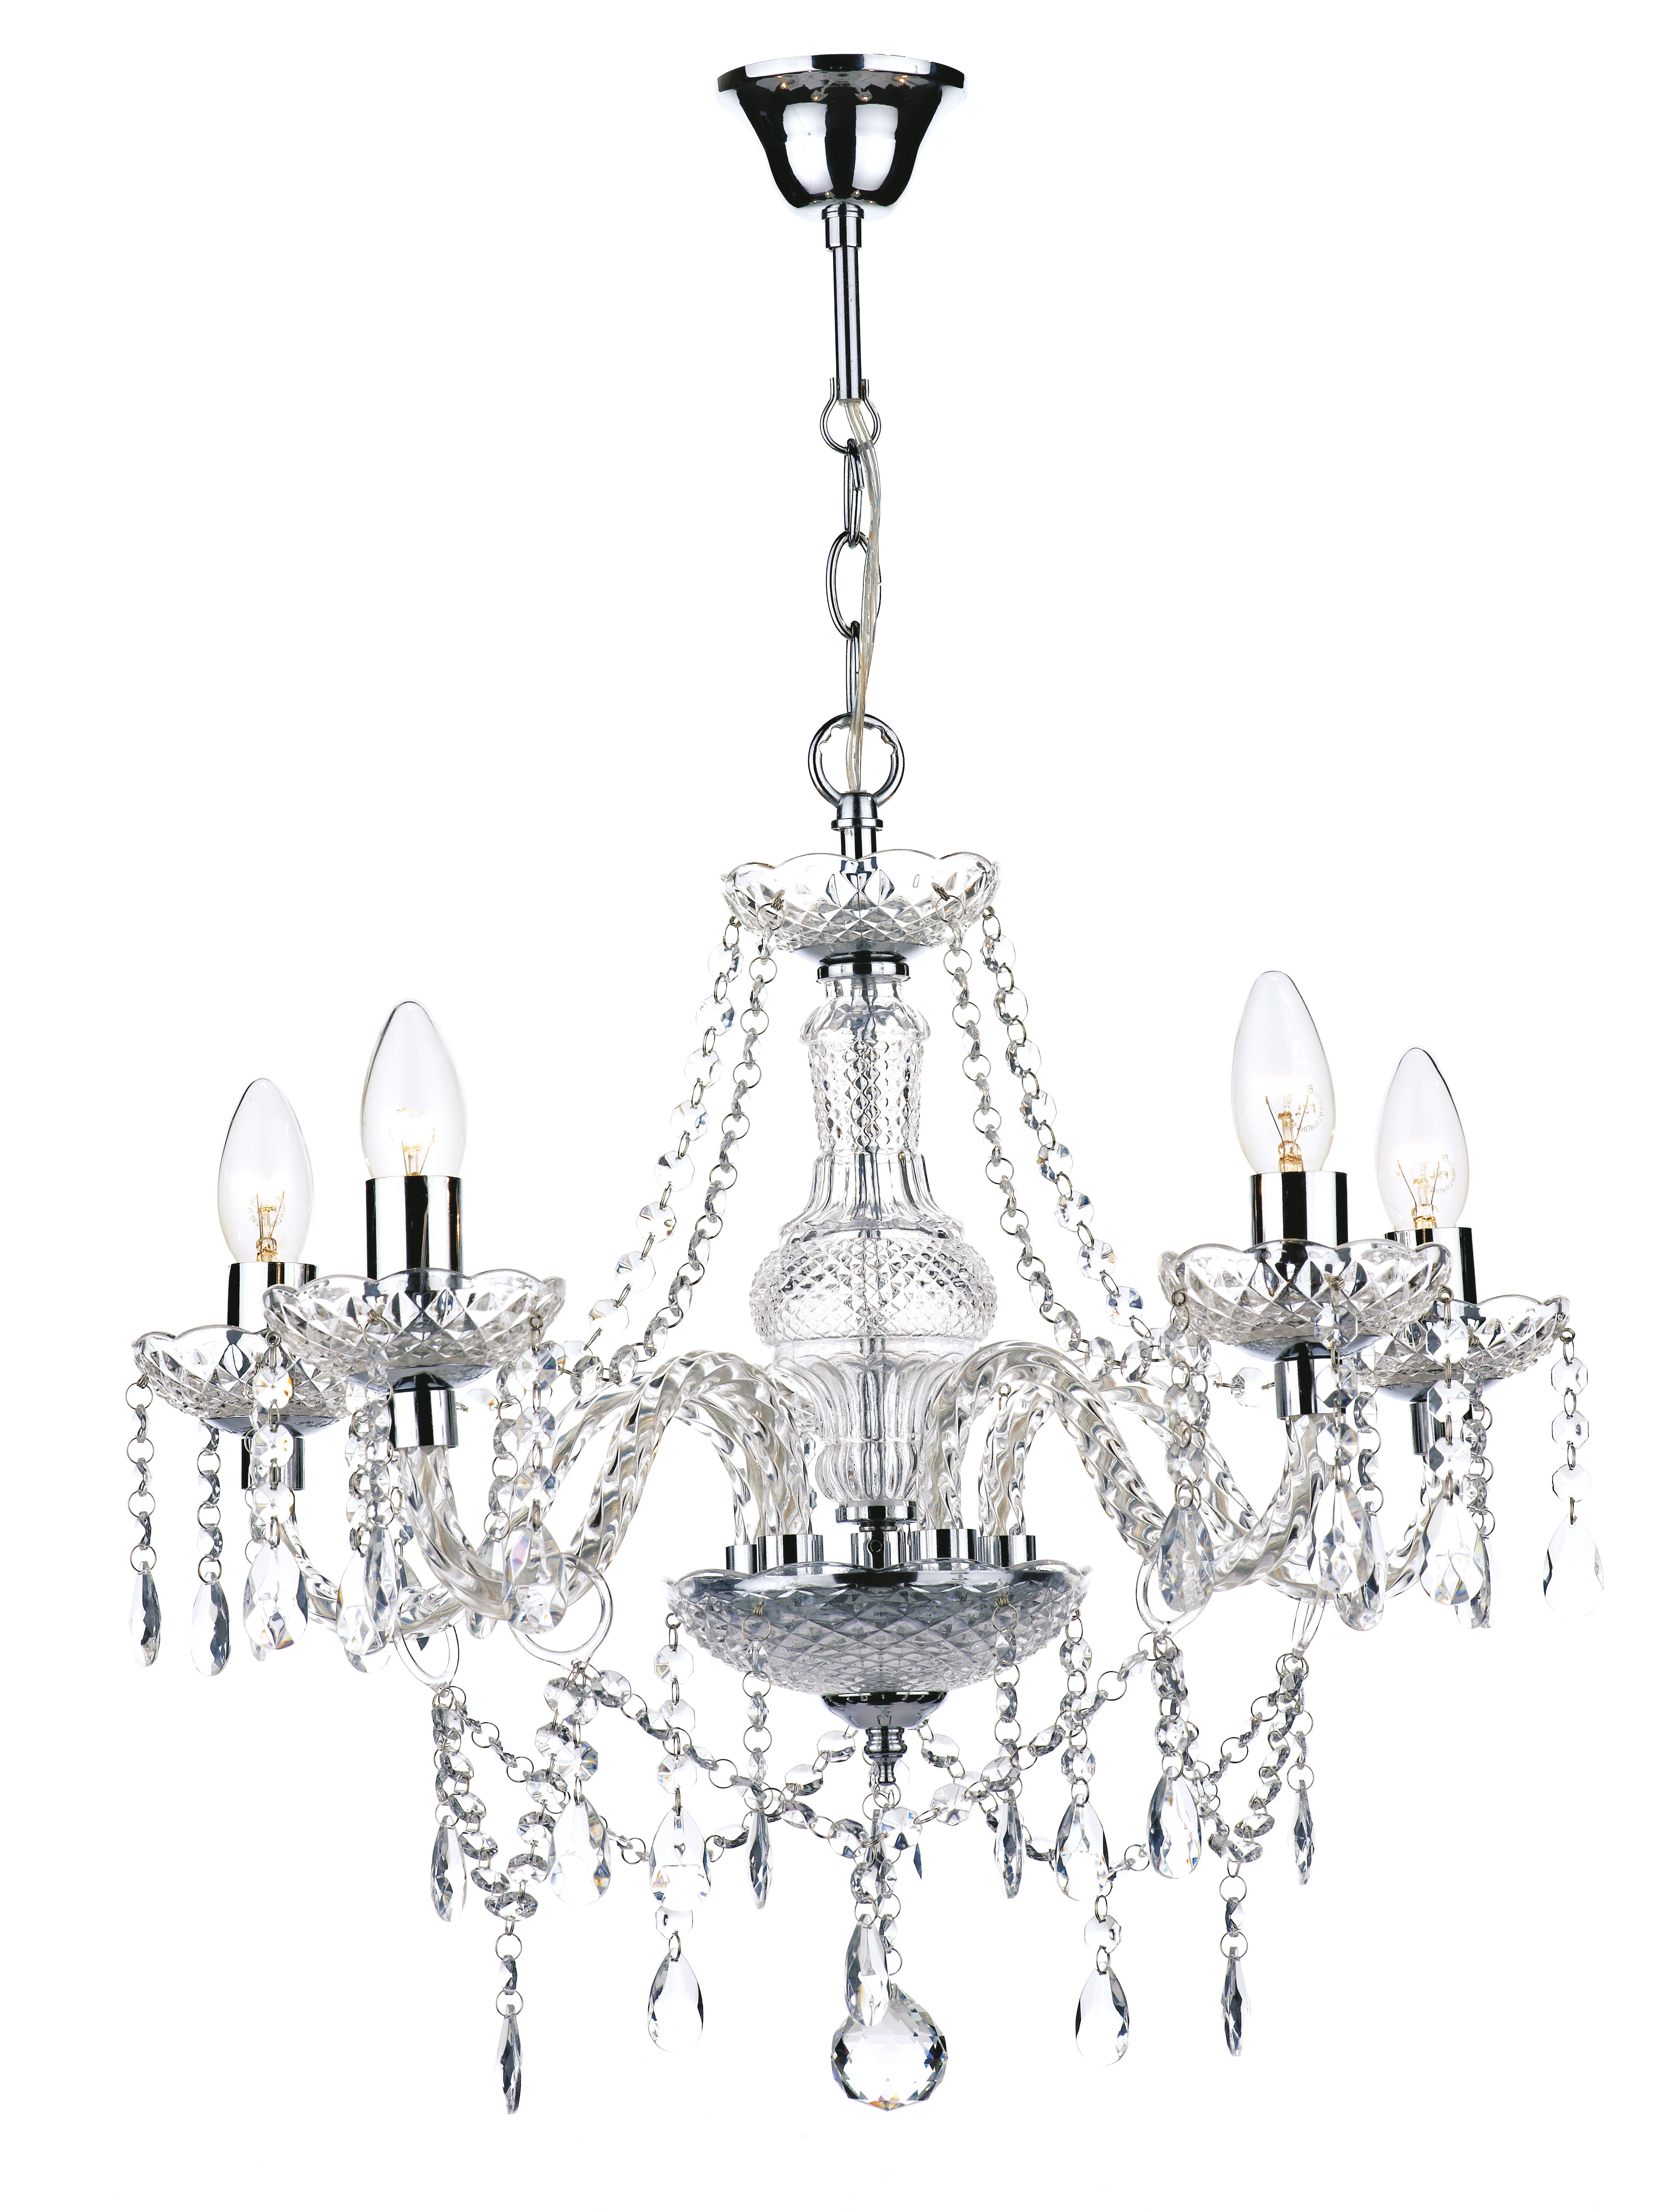 Chandelier Png (110+ images in Collection) Page 2.